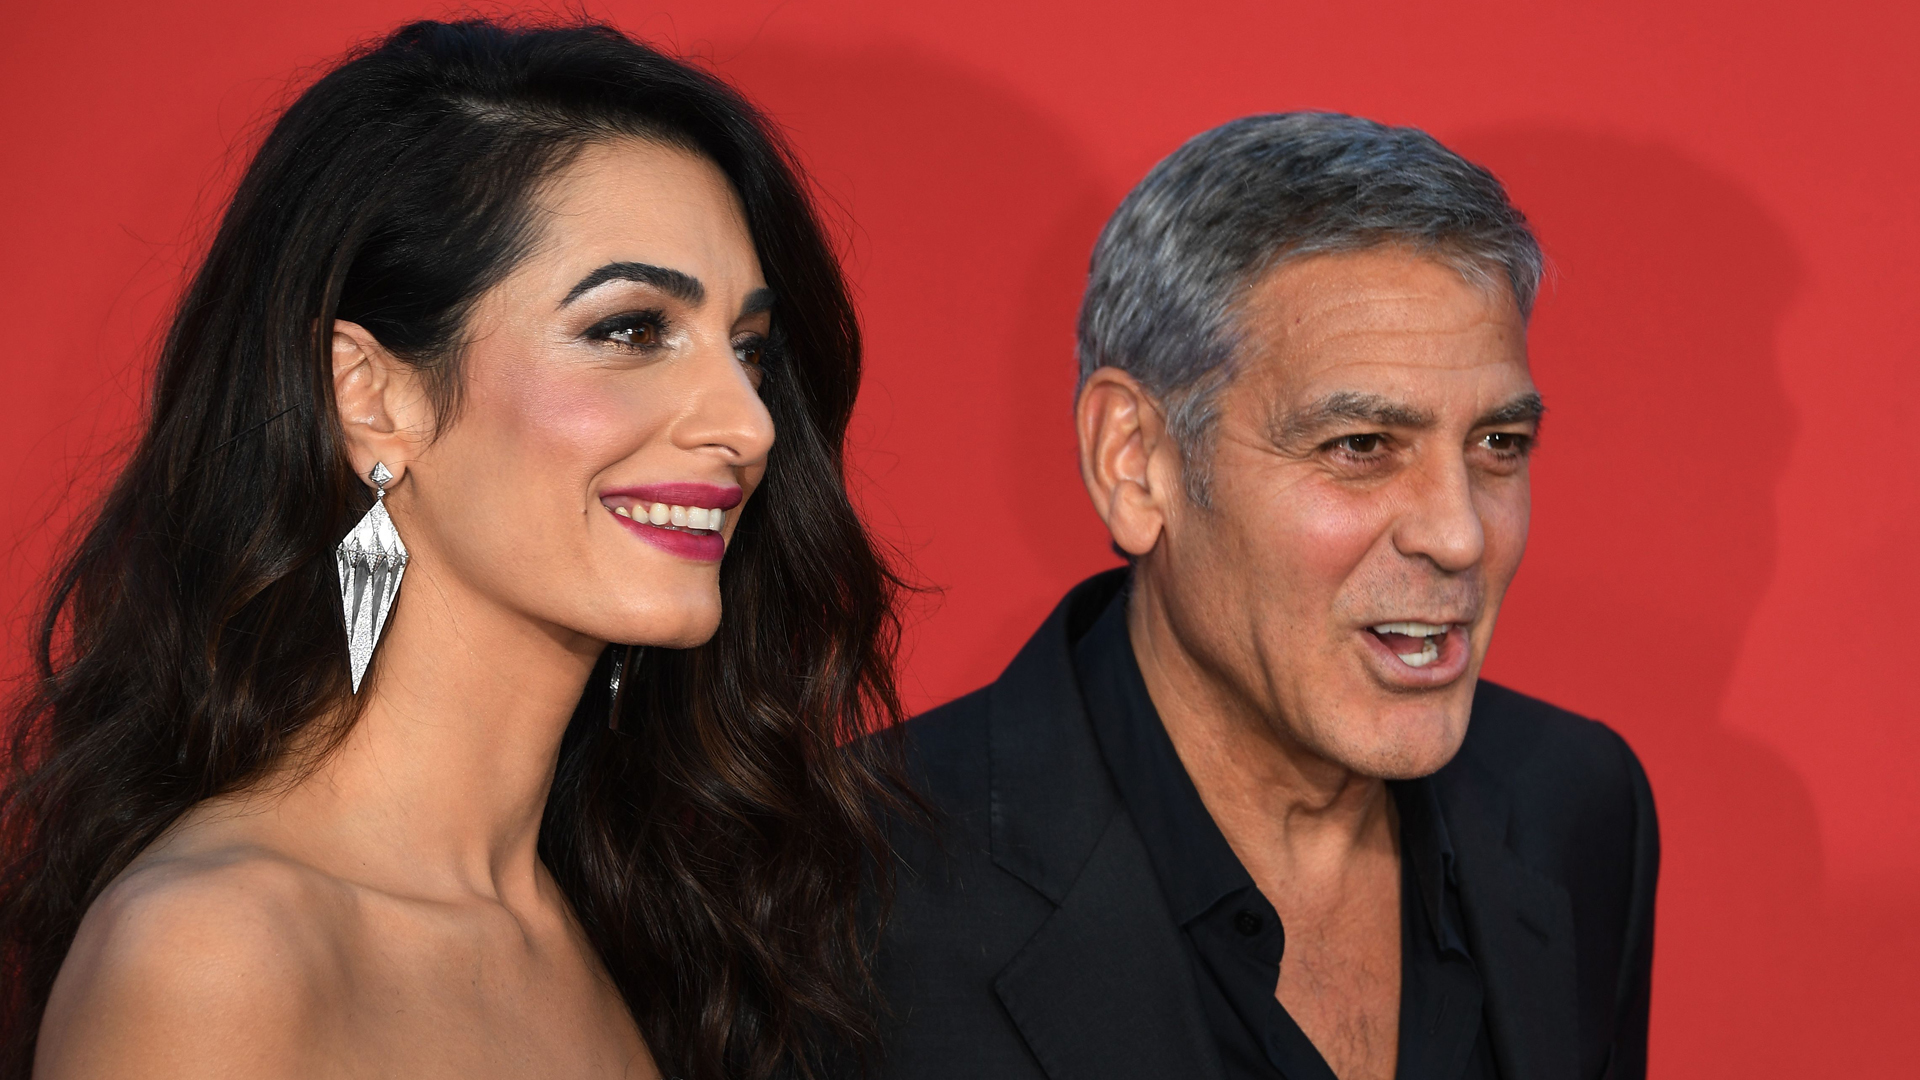 George Clooney and his wife Amal Clooney arrive for the Premiere of Paramount Pictures 'Suburbicon' at the Regency Village Theatre in Westwood, on October 22, 2017. (Credit: MARK RALSTON/AFP/Getty Images)